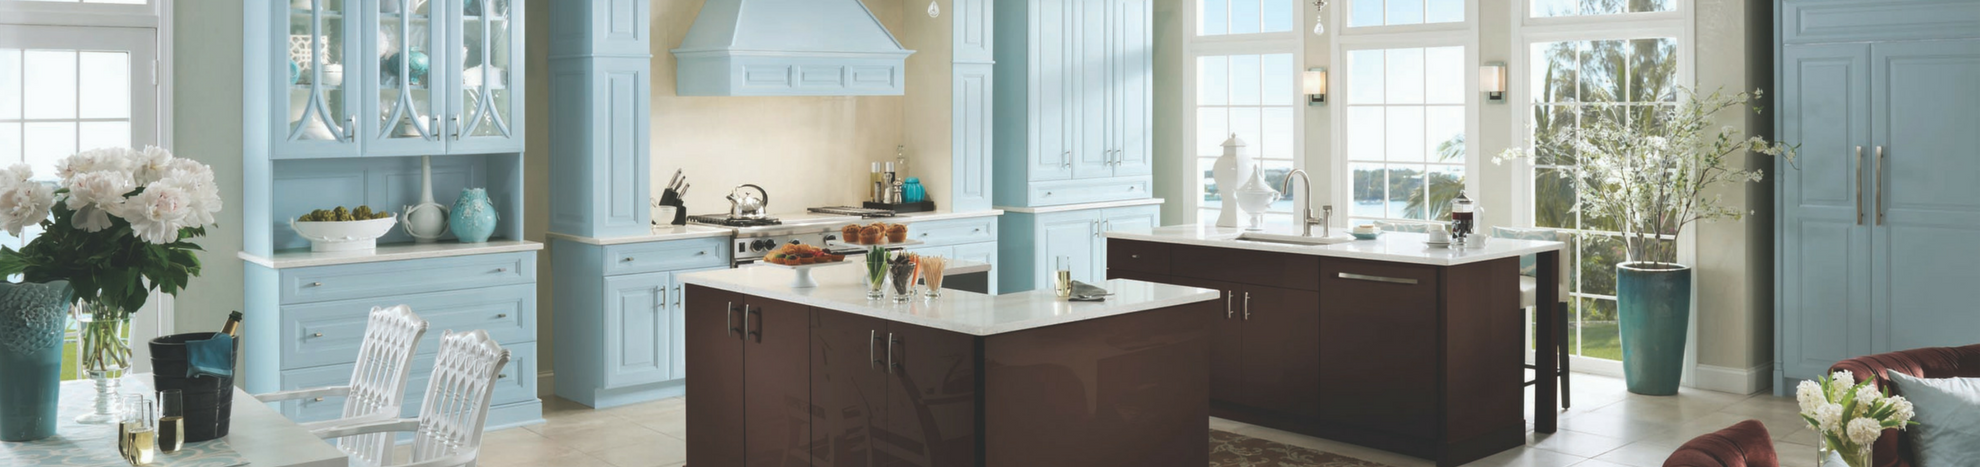 Hassle Free Kitchen Design & Remodeling in Cleveland, Ohio